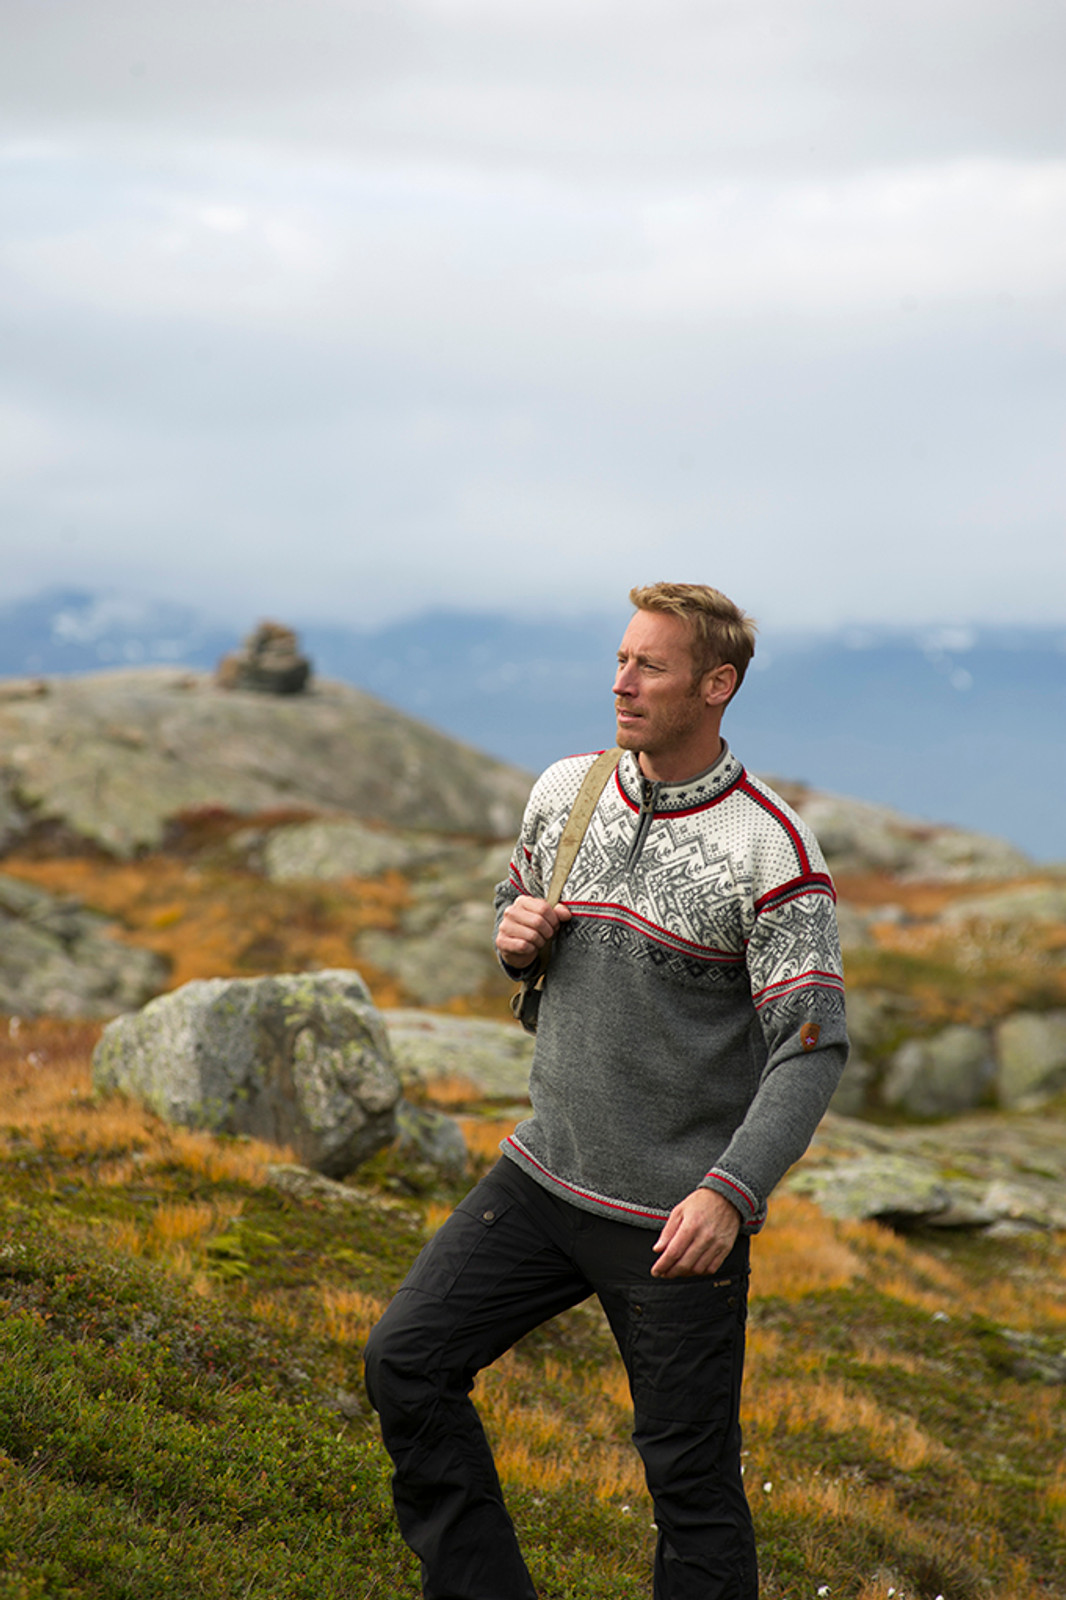 Man standing in field wearing a Dale of Norway unisex Vail sweater in Smoke/Raspberry/Off White/Dark Charcoal/Light Charcoal, 90331-T